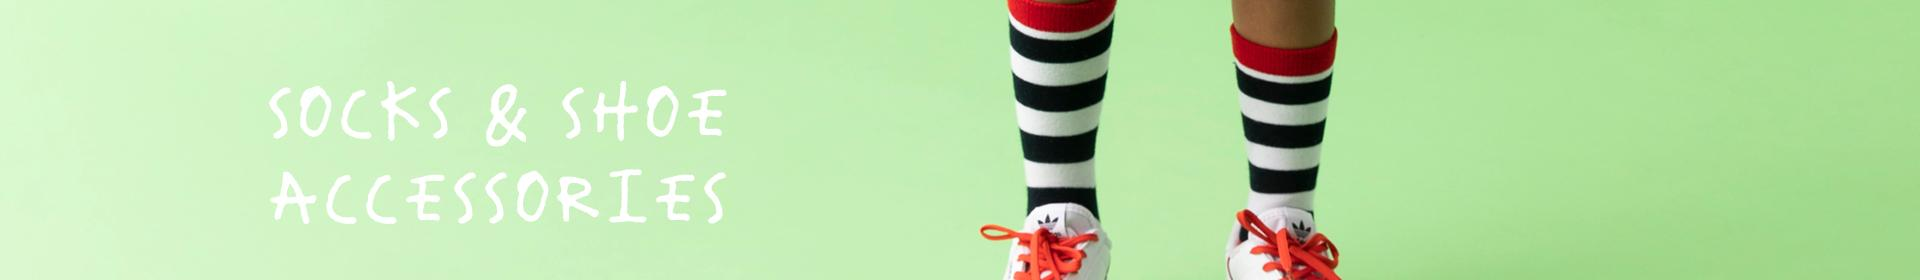 The Trybe Accessories: Socks & Shoe Accessories